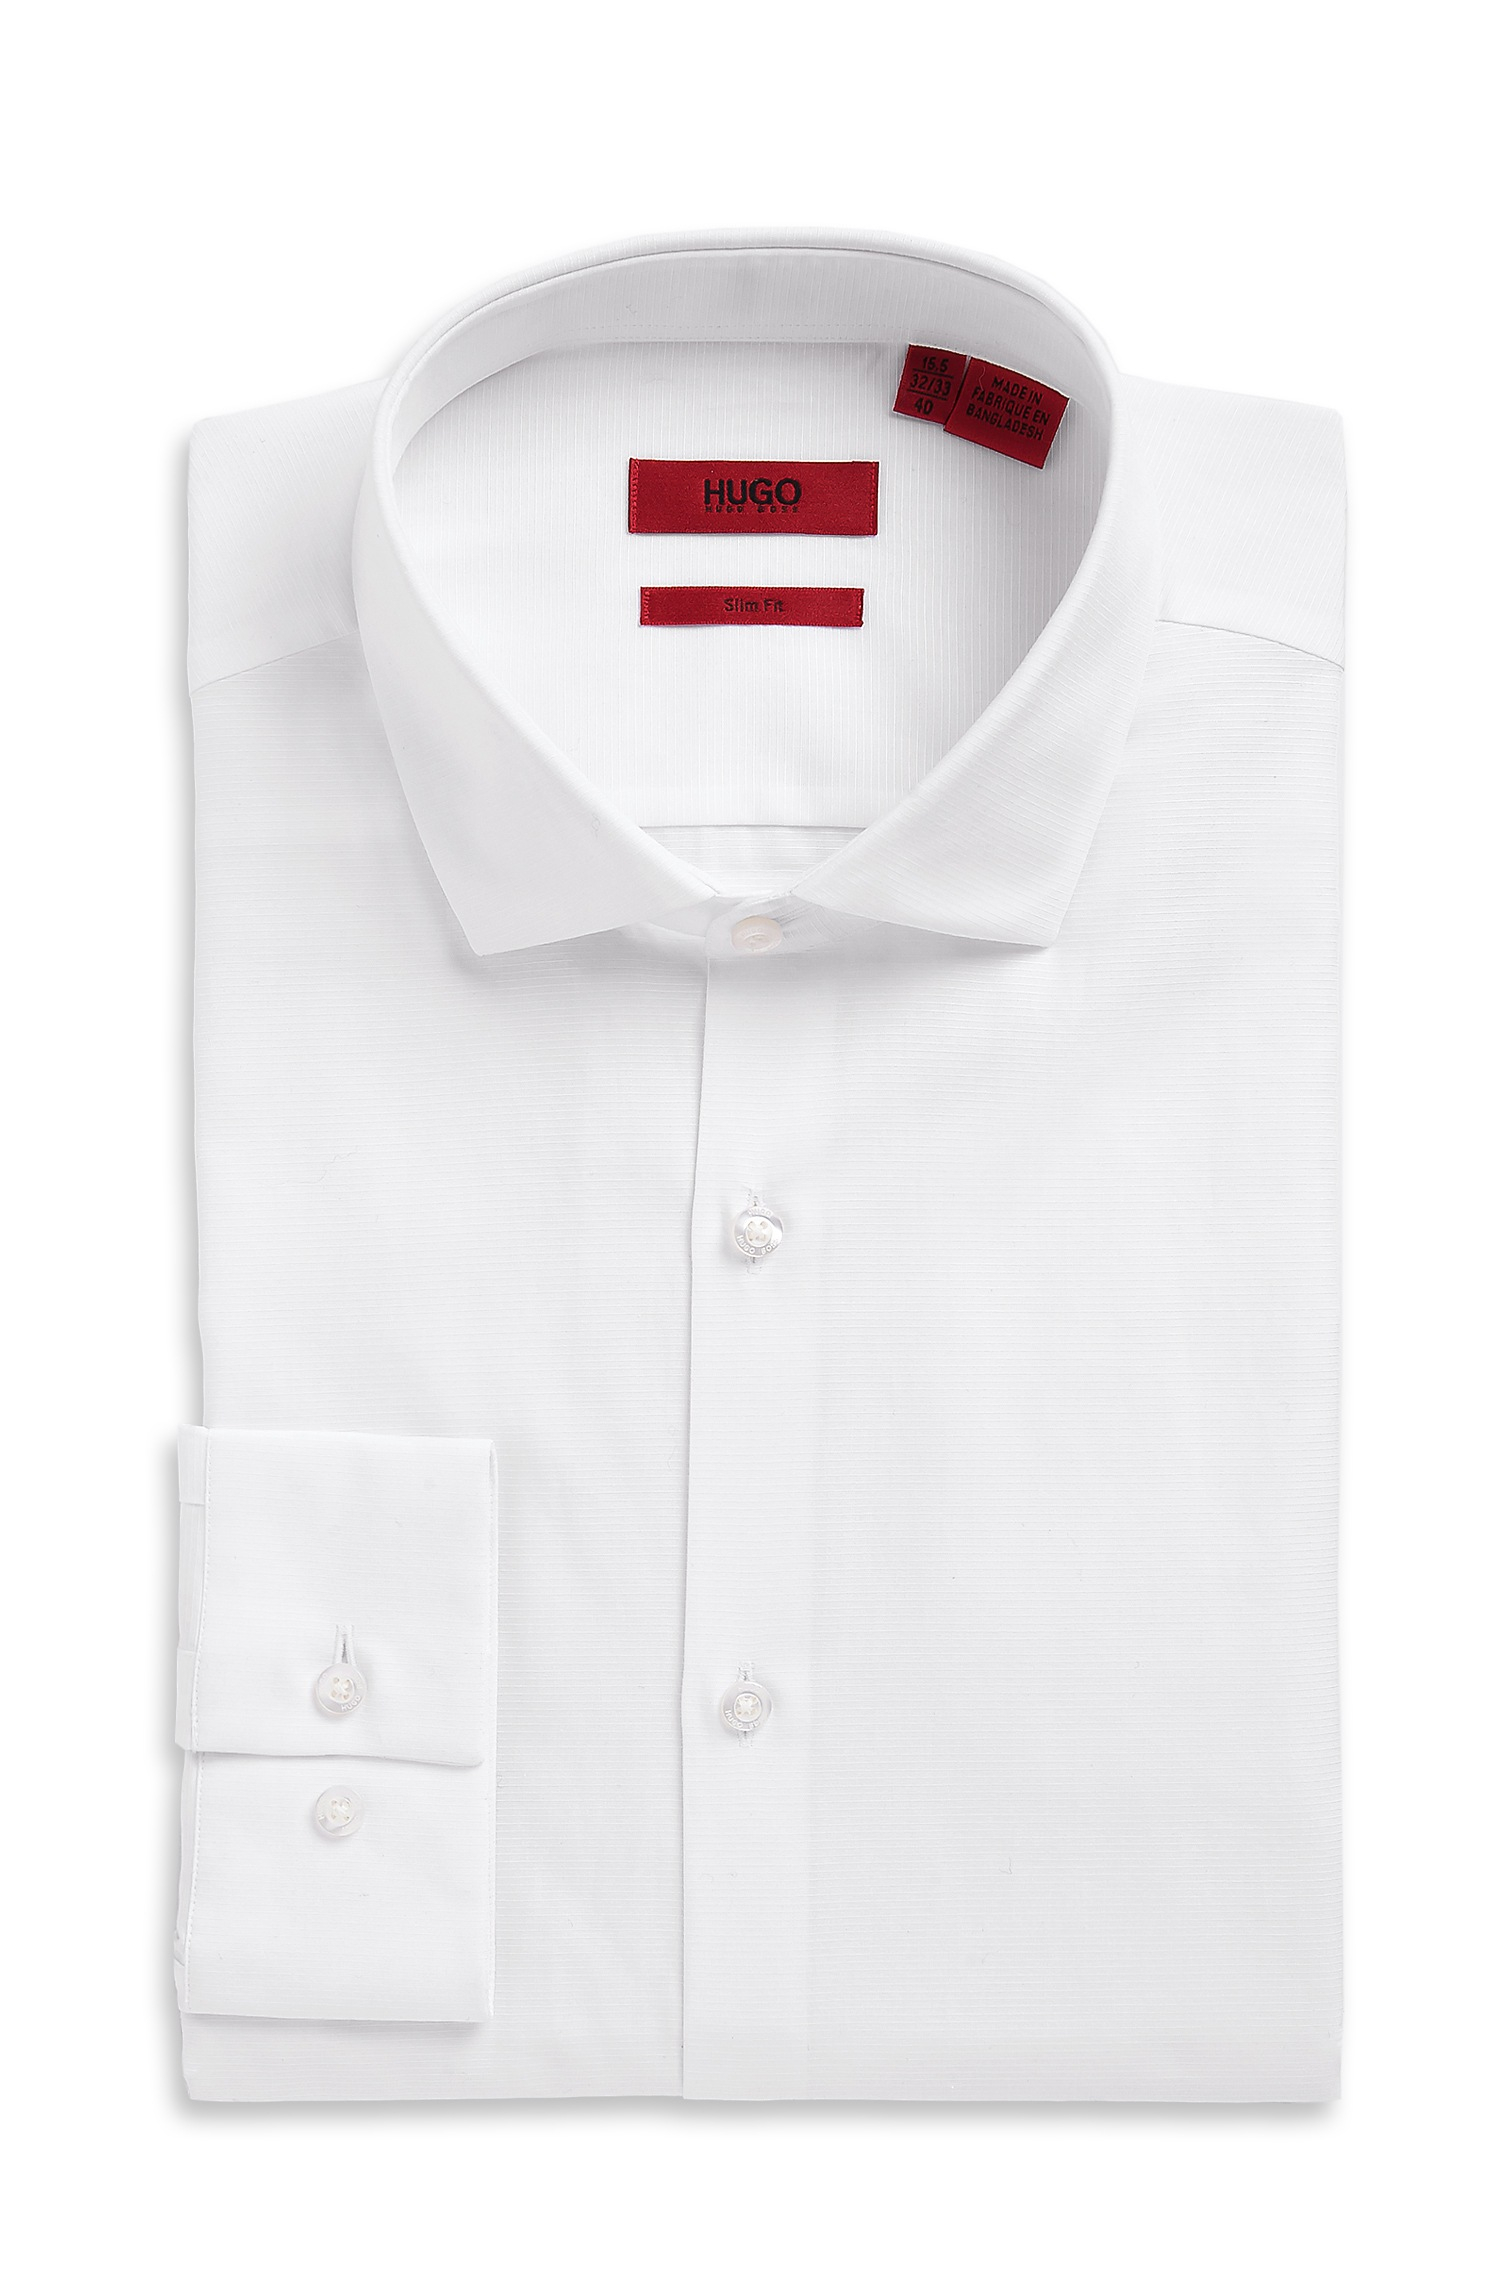 Hugo 39 eastonx 39 slim fit modified spread collar cotton for Spread collar slim fit dress shirts